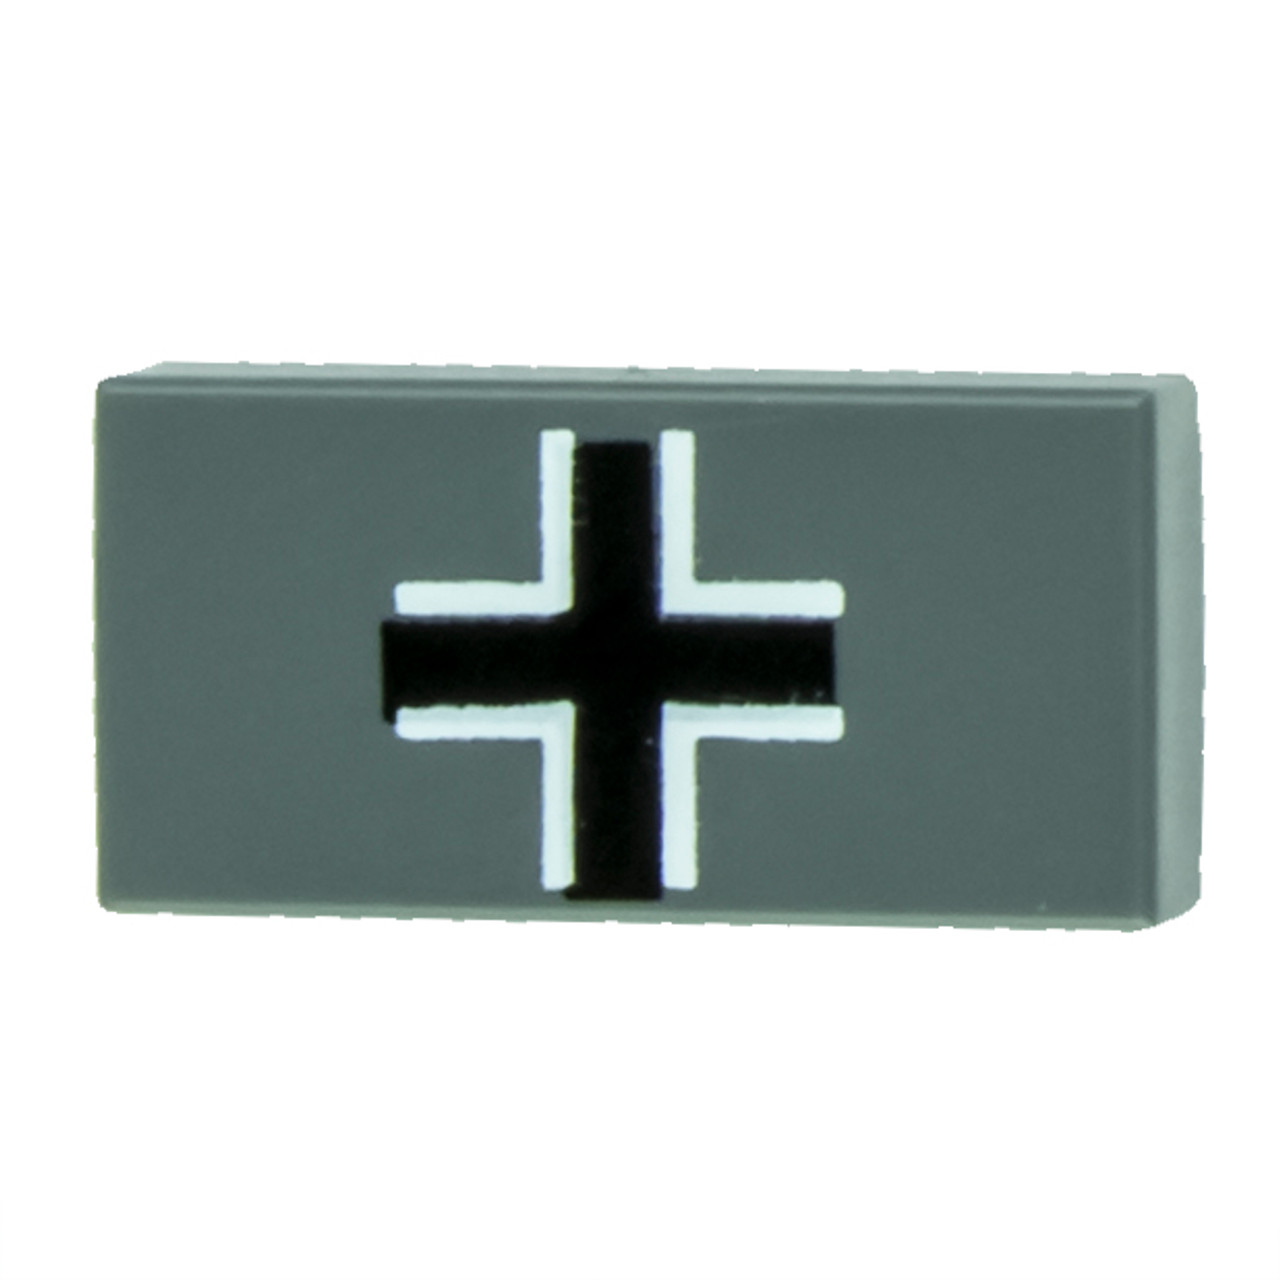 1x2 Balkenkreuz Tile - Dark Gray